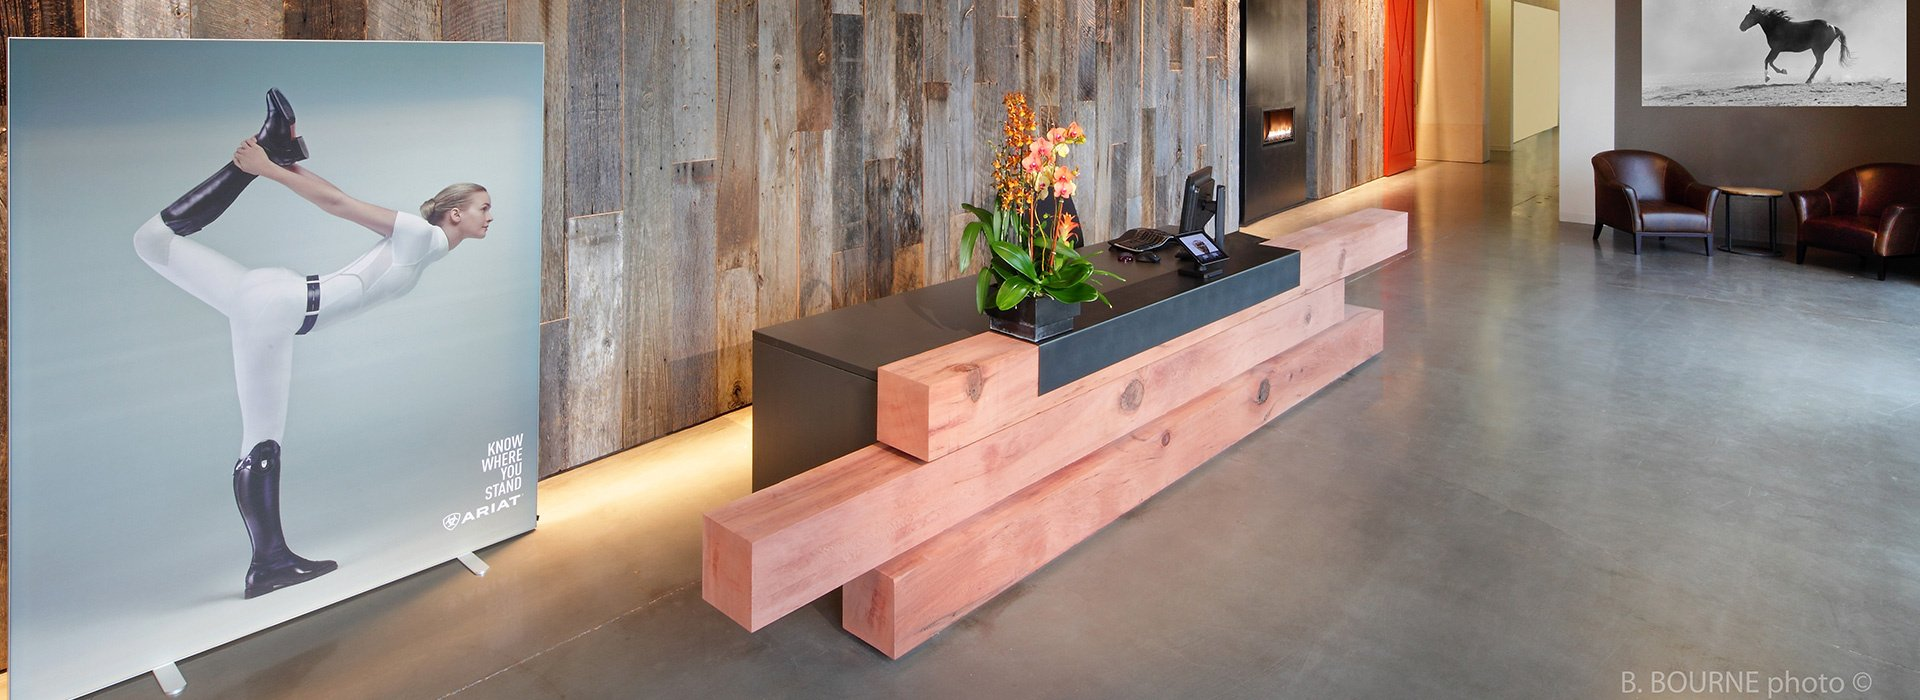 Ariat HQ Reception Desk Made of Redwood Timbers